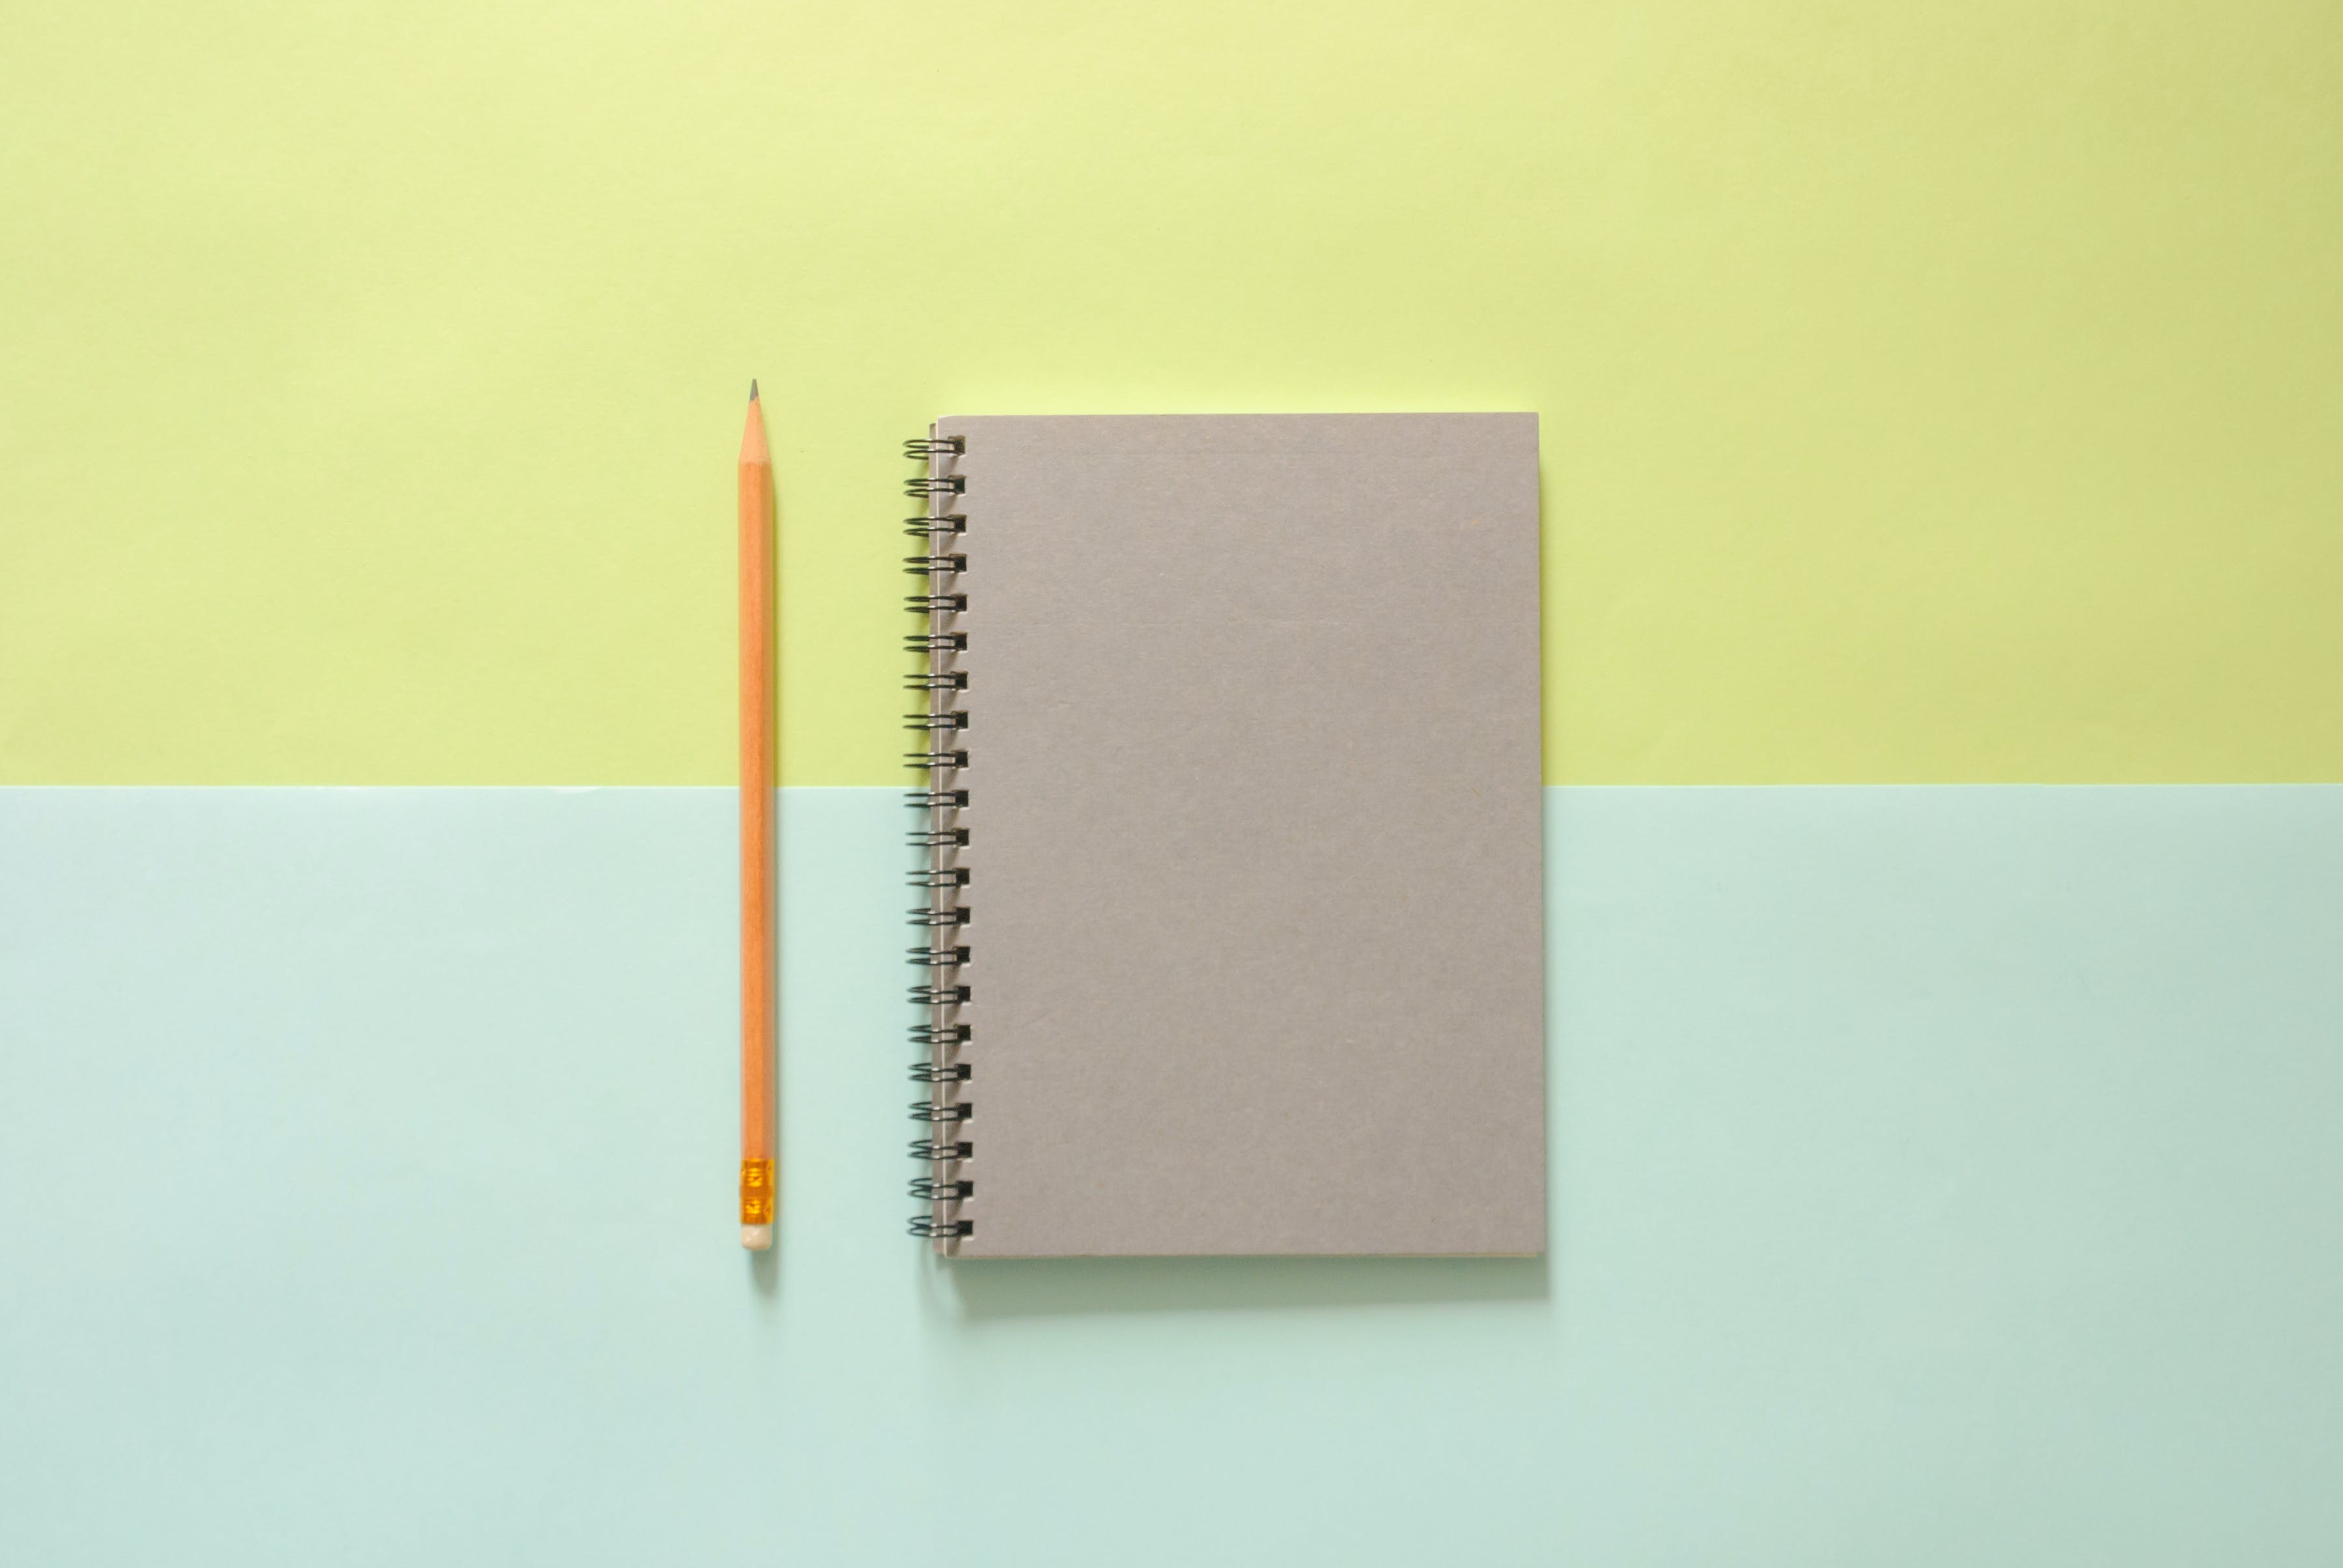 White Spiral Notebook Beside Orange Pencil